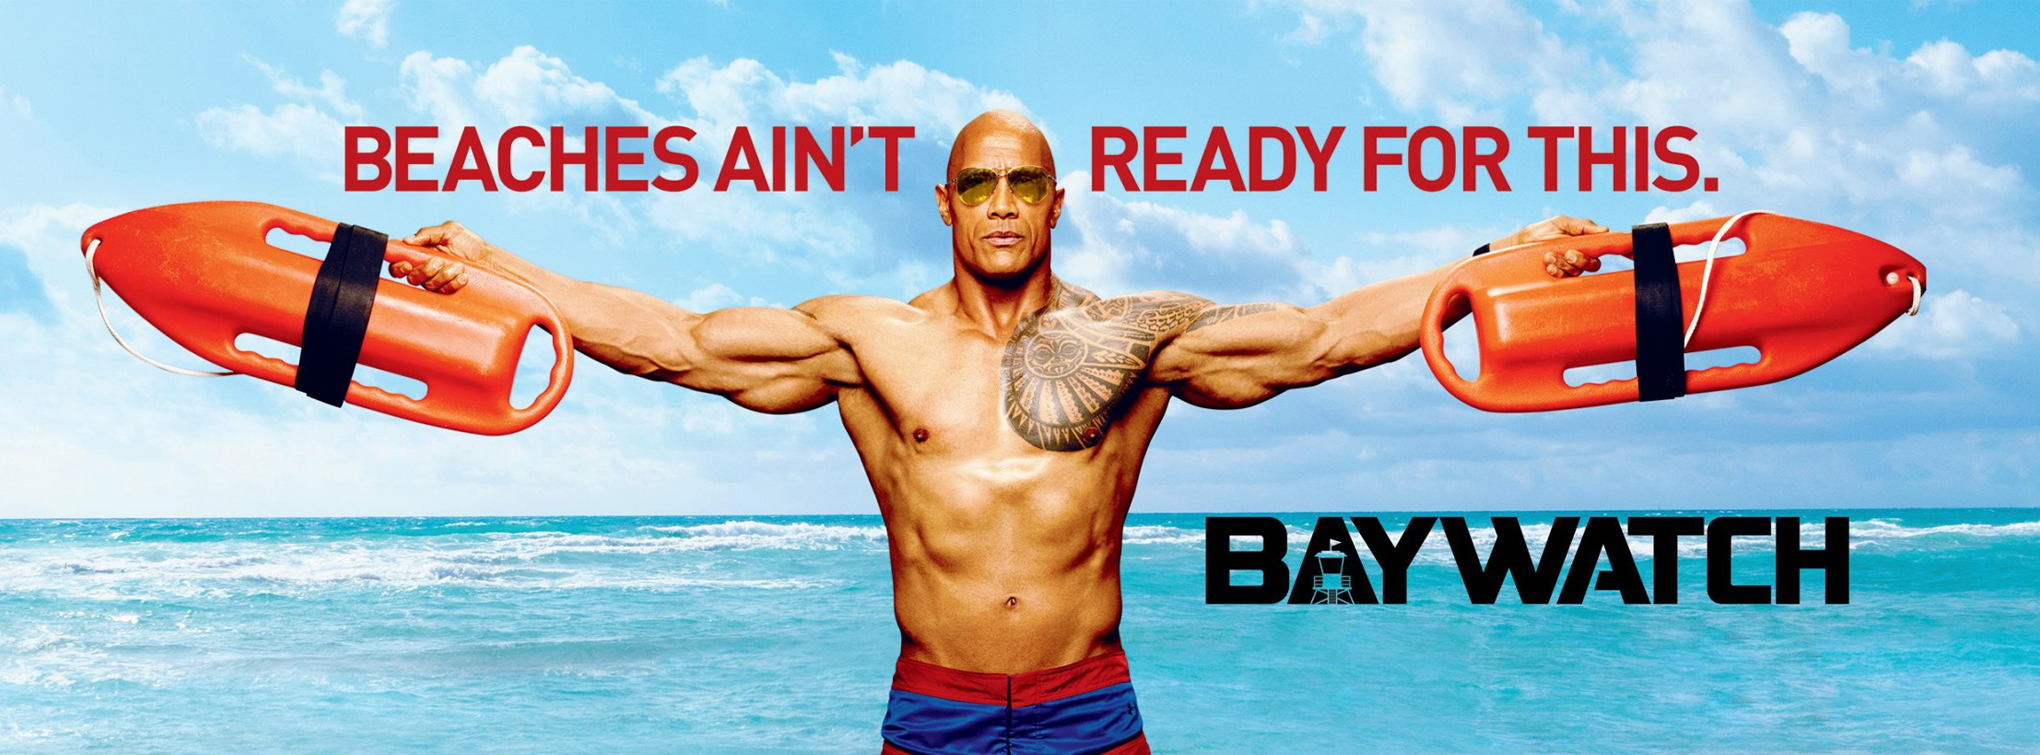 Baywatch - starring Dwayne Johnson and Zac Efron - coming May 25!